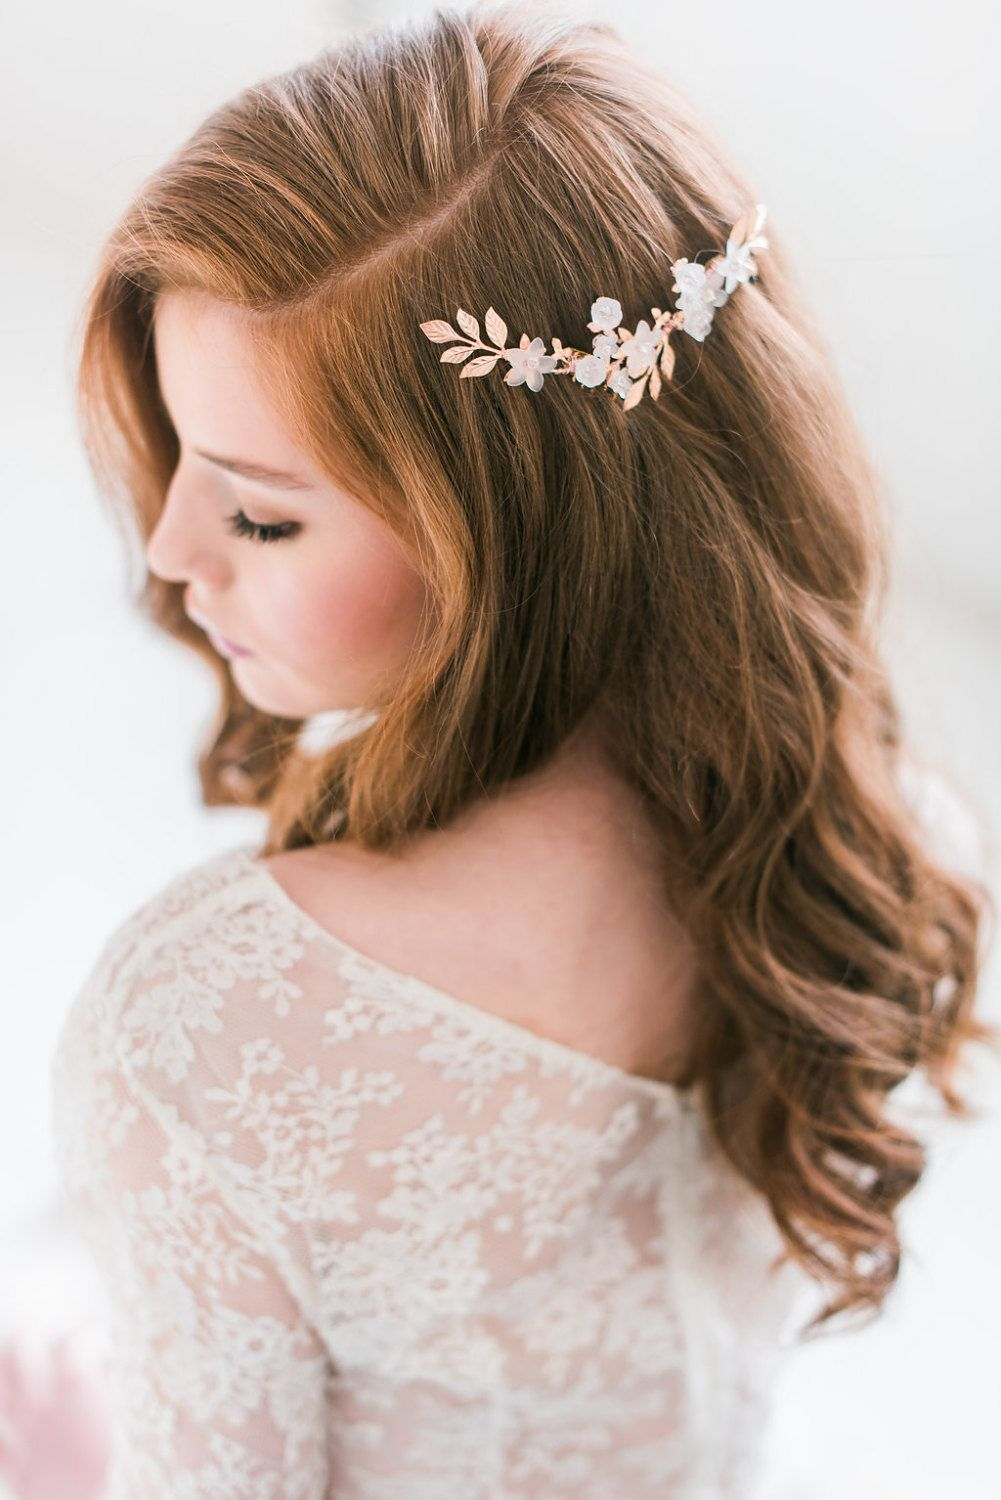 new → tessa kim 2017 bridal hair accessories | hair